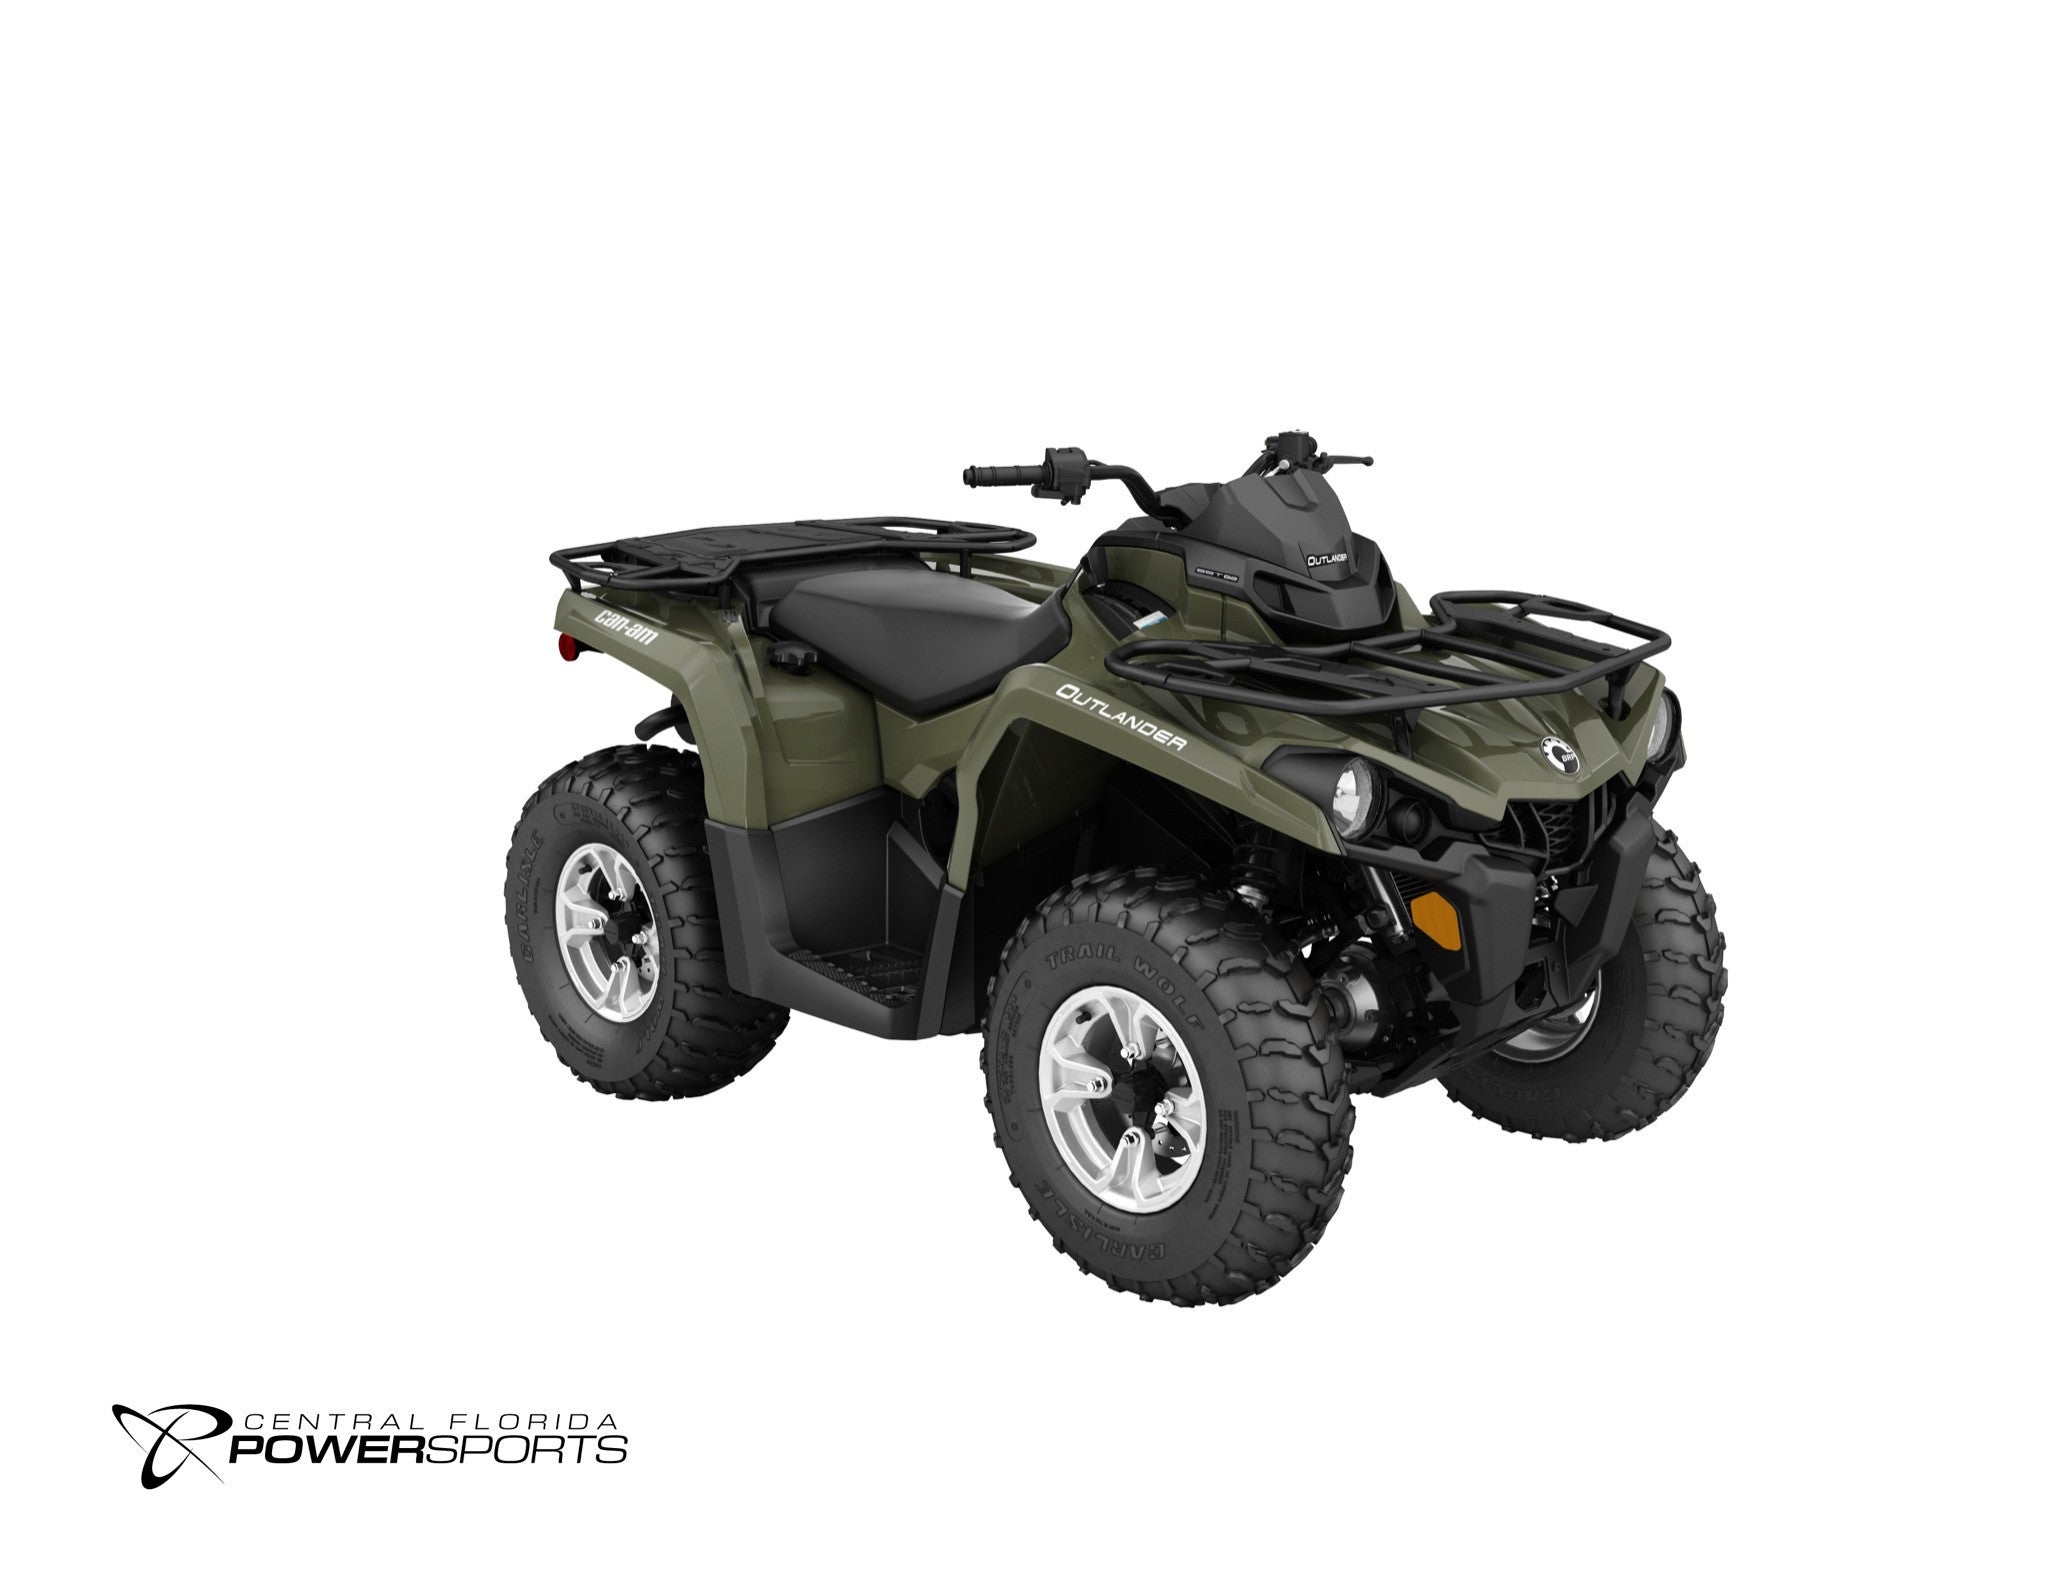 2018 canam outlander dps 450 570 central florida powersports. Black Bedroom Furniture Sets. Home Design Ideas